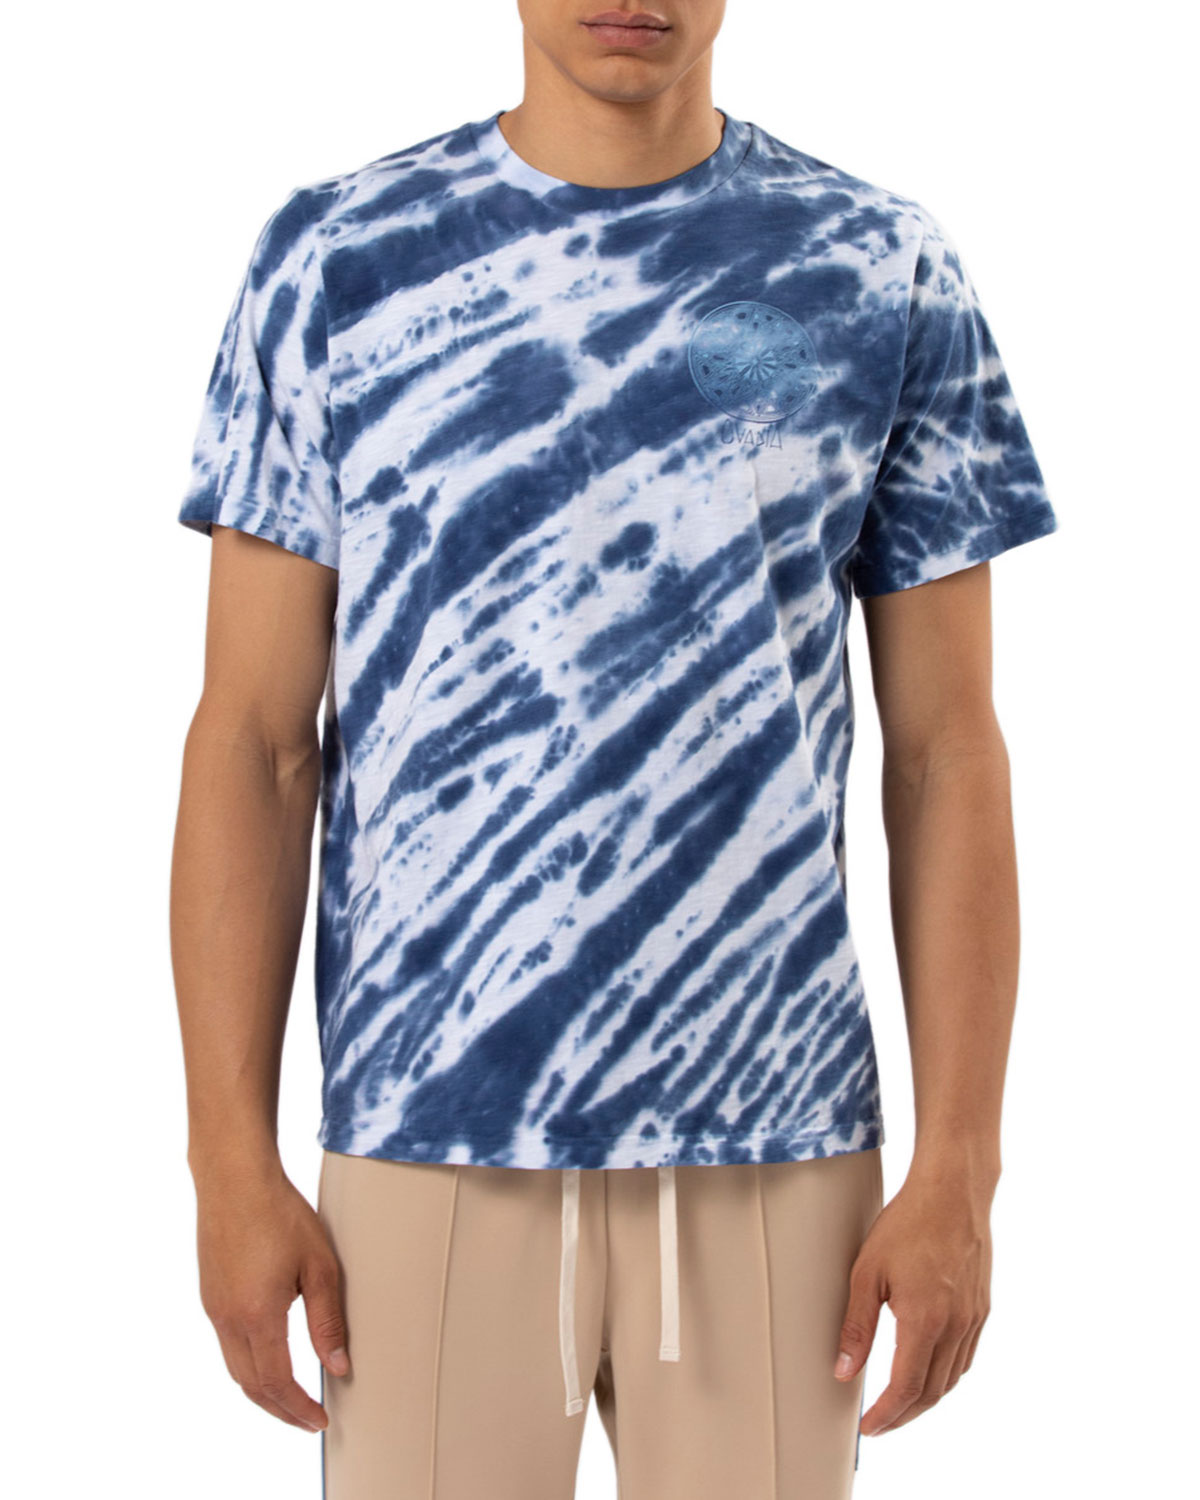 Ovadia & Sons - Blue Tie-Dye / $140See? Not all dye tops have to feature a swirl pattern…